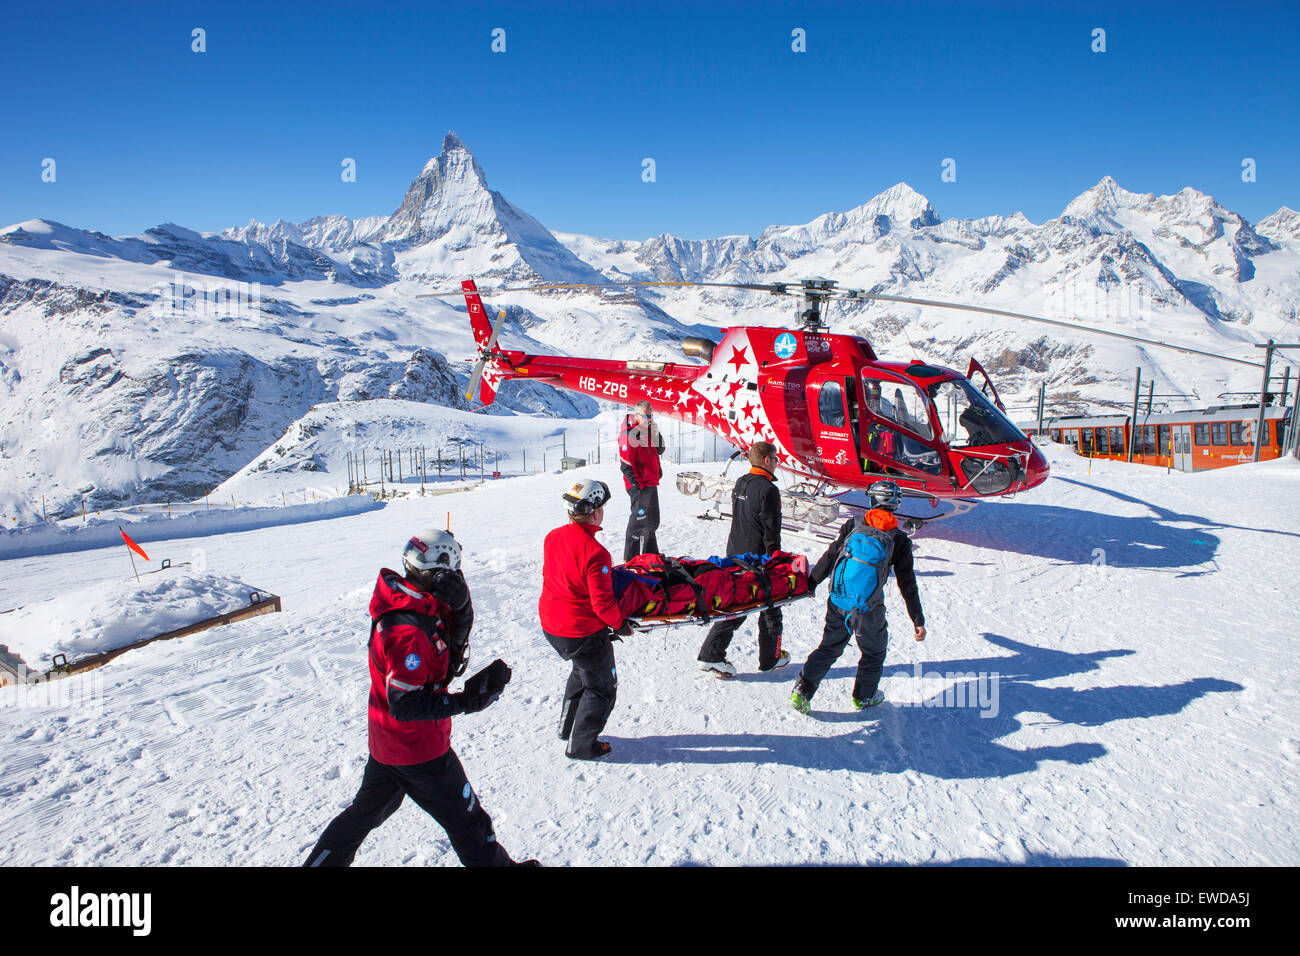 Rescue personnel are carrying an injured skier to a helicopter of Air Zermatt at the Gornergrat ski area in Zermatt - Stock Image